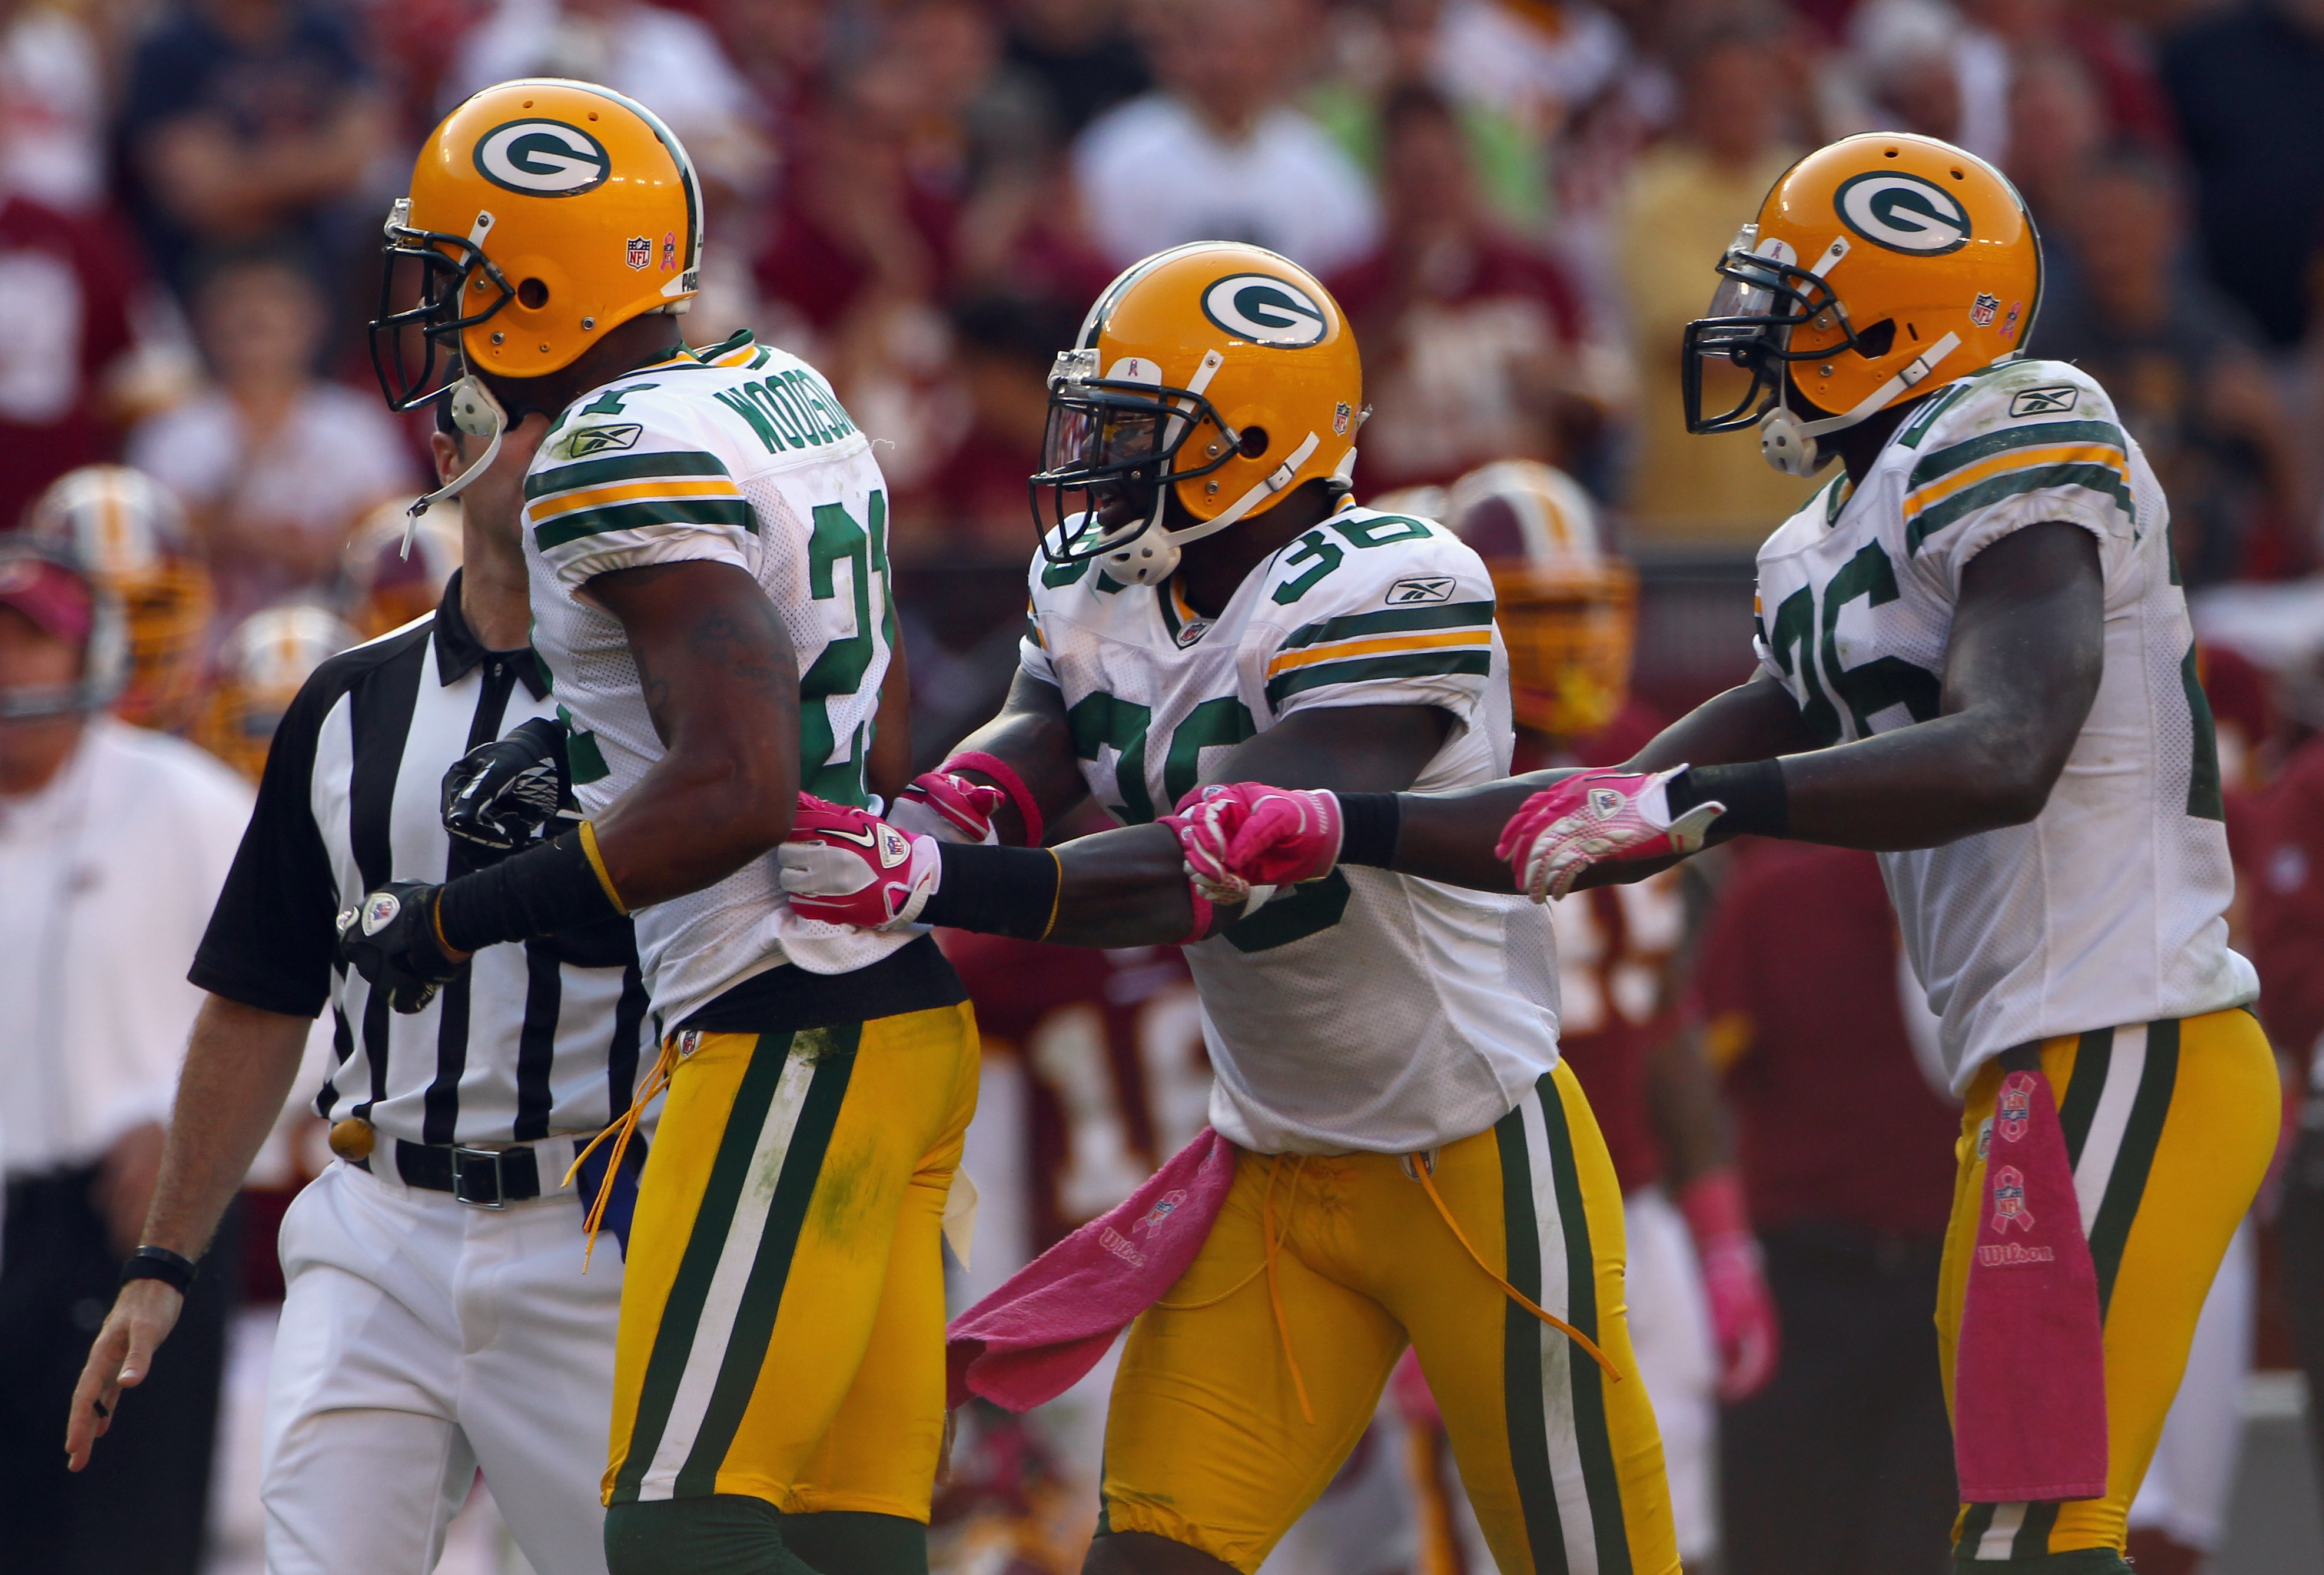 LANDOVER, MD - OCTOBER 10:  Defensive back Charles Woodson #21 of the Green Bay Packers is restrained by teammates Nick Collins #36 and Josh Bell #26 while arguing an official's call in the fourth quarter against the Washington Redskins at FedExField on O